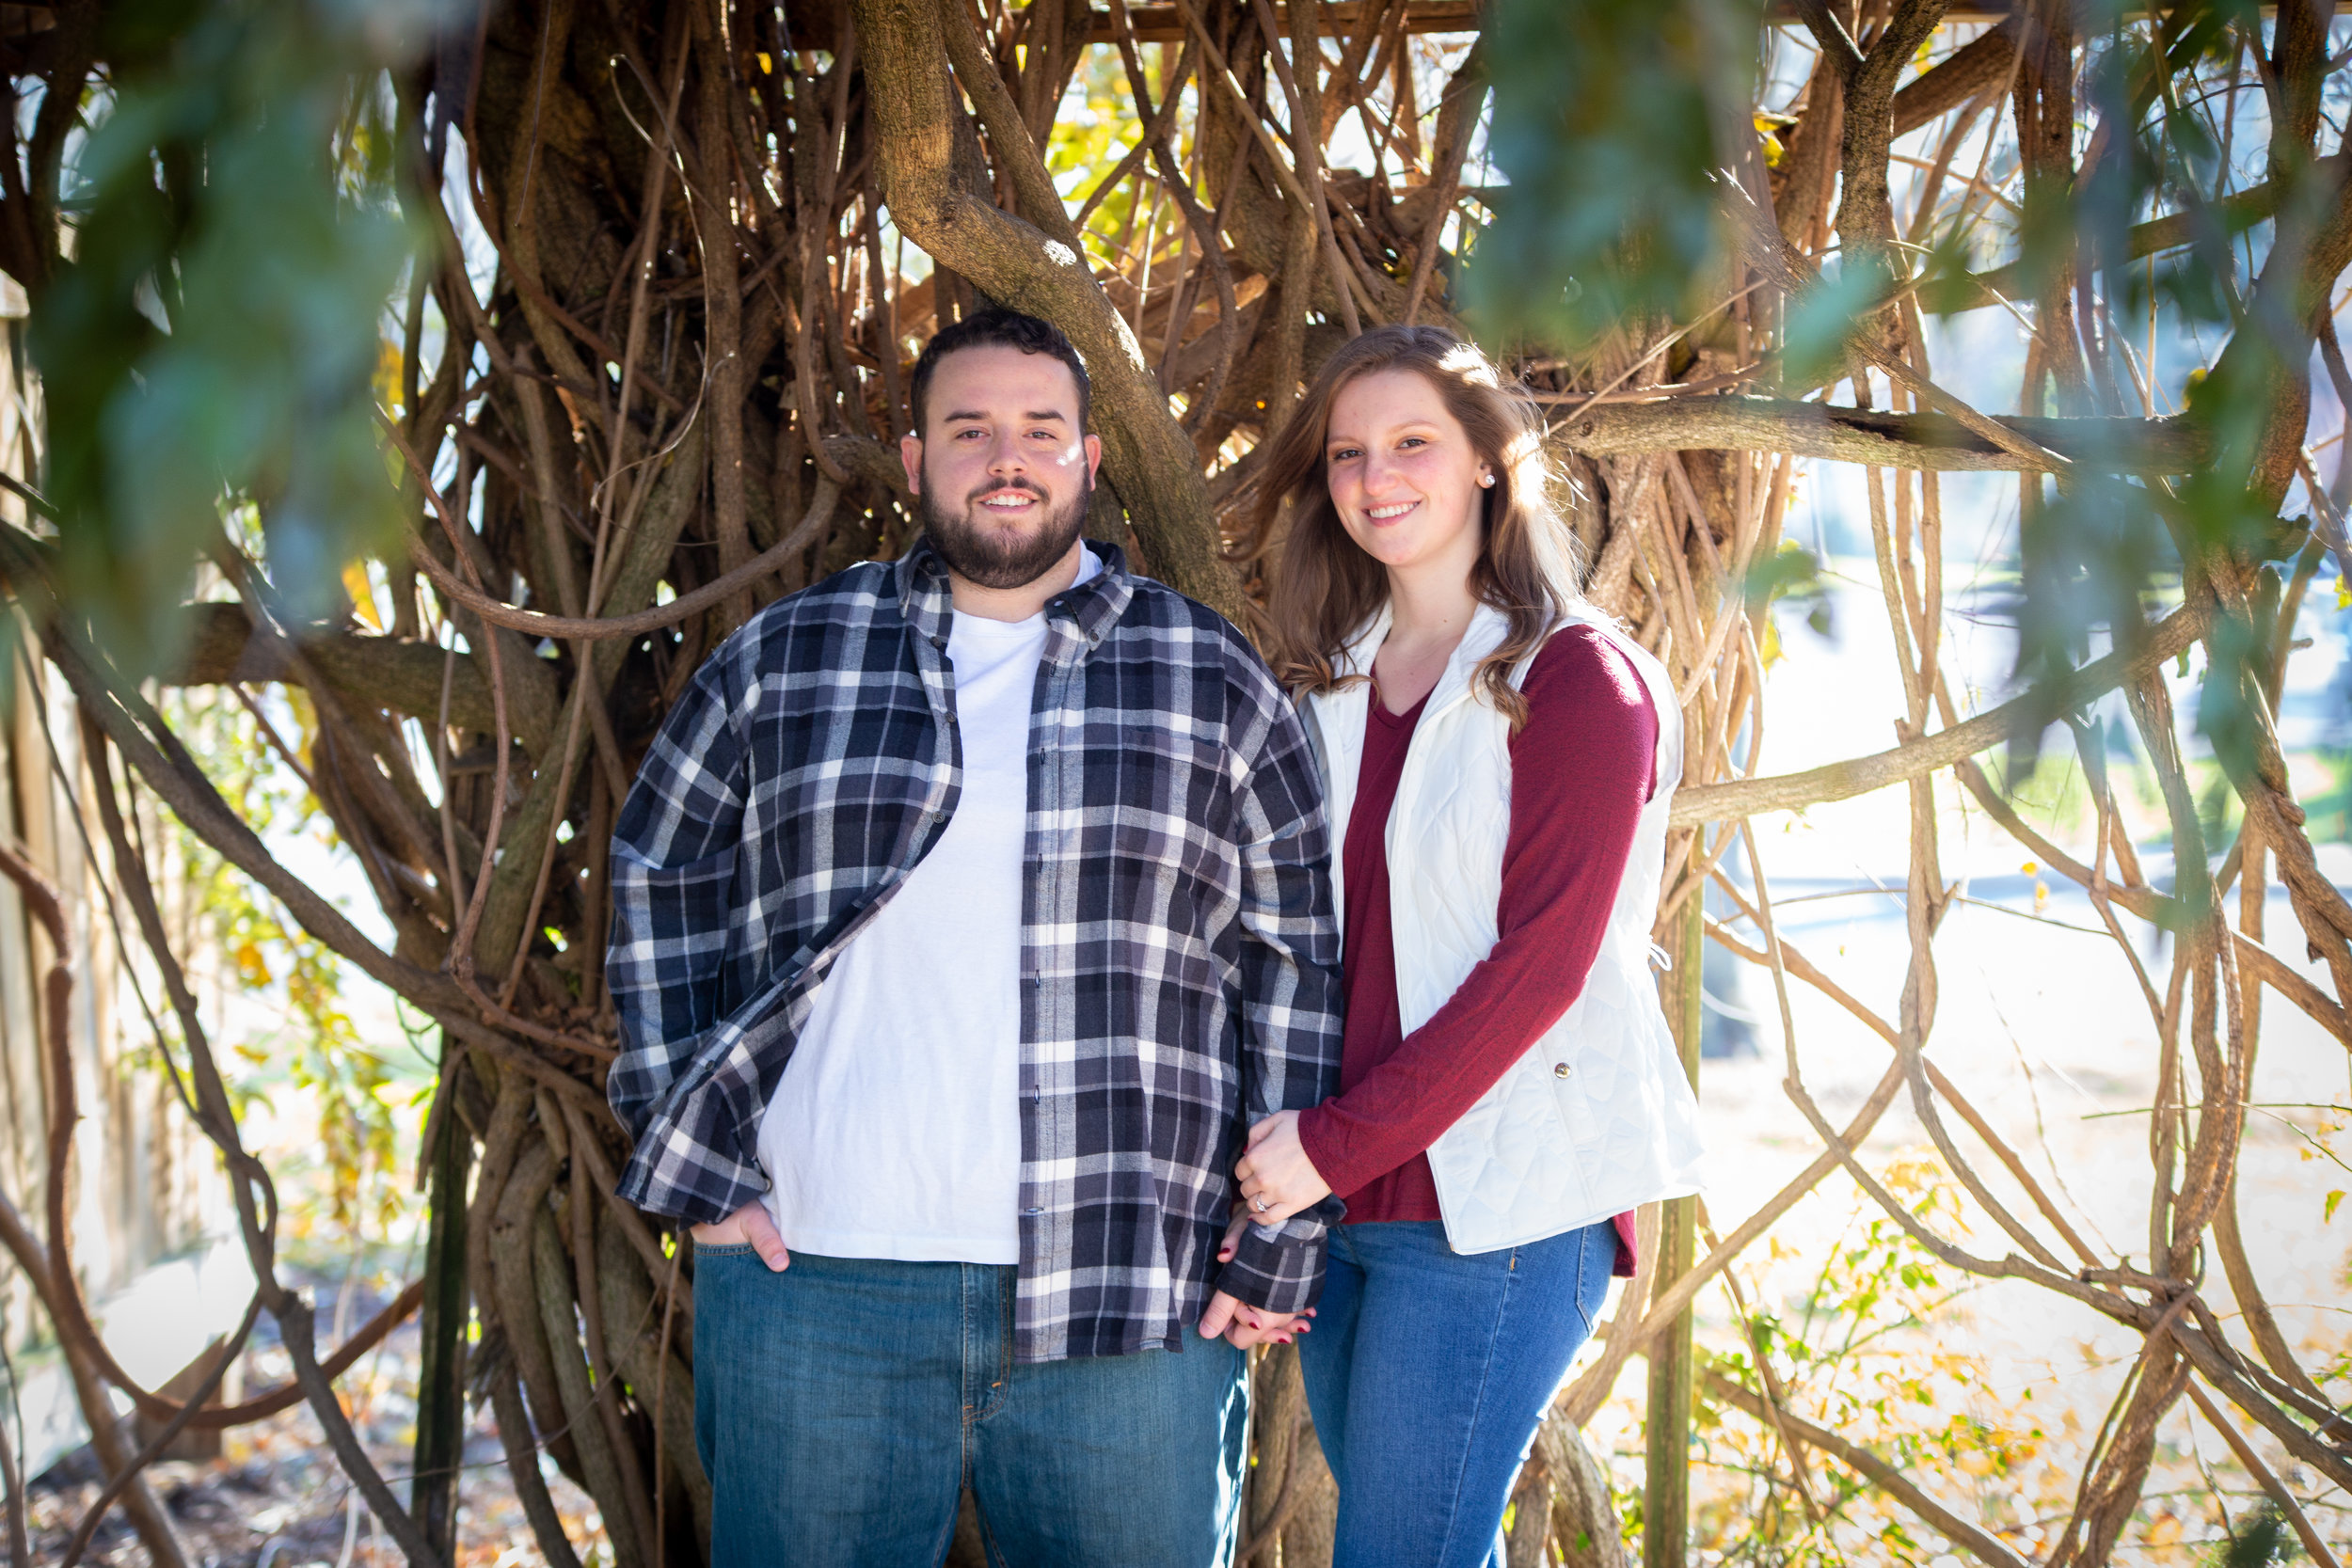 Fall-Vines-gaze-love-couple-shoot-photography-blacksburg-roanoke-love-lover-loving-engaged-wedding-Virginia-Tech-campus-framing-bright